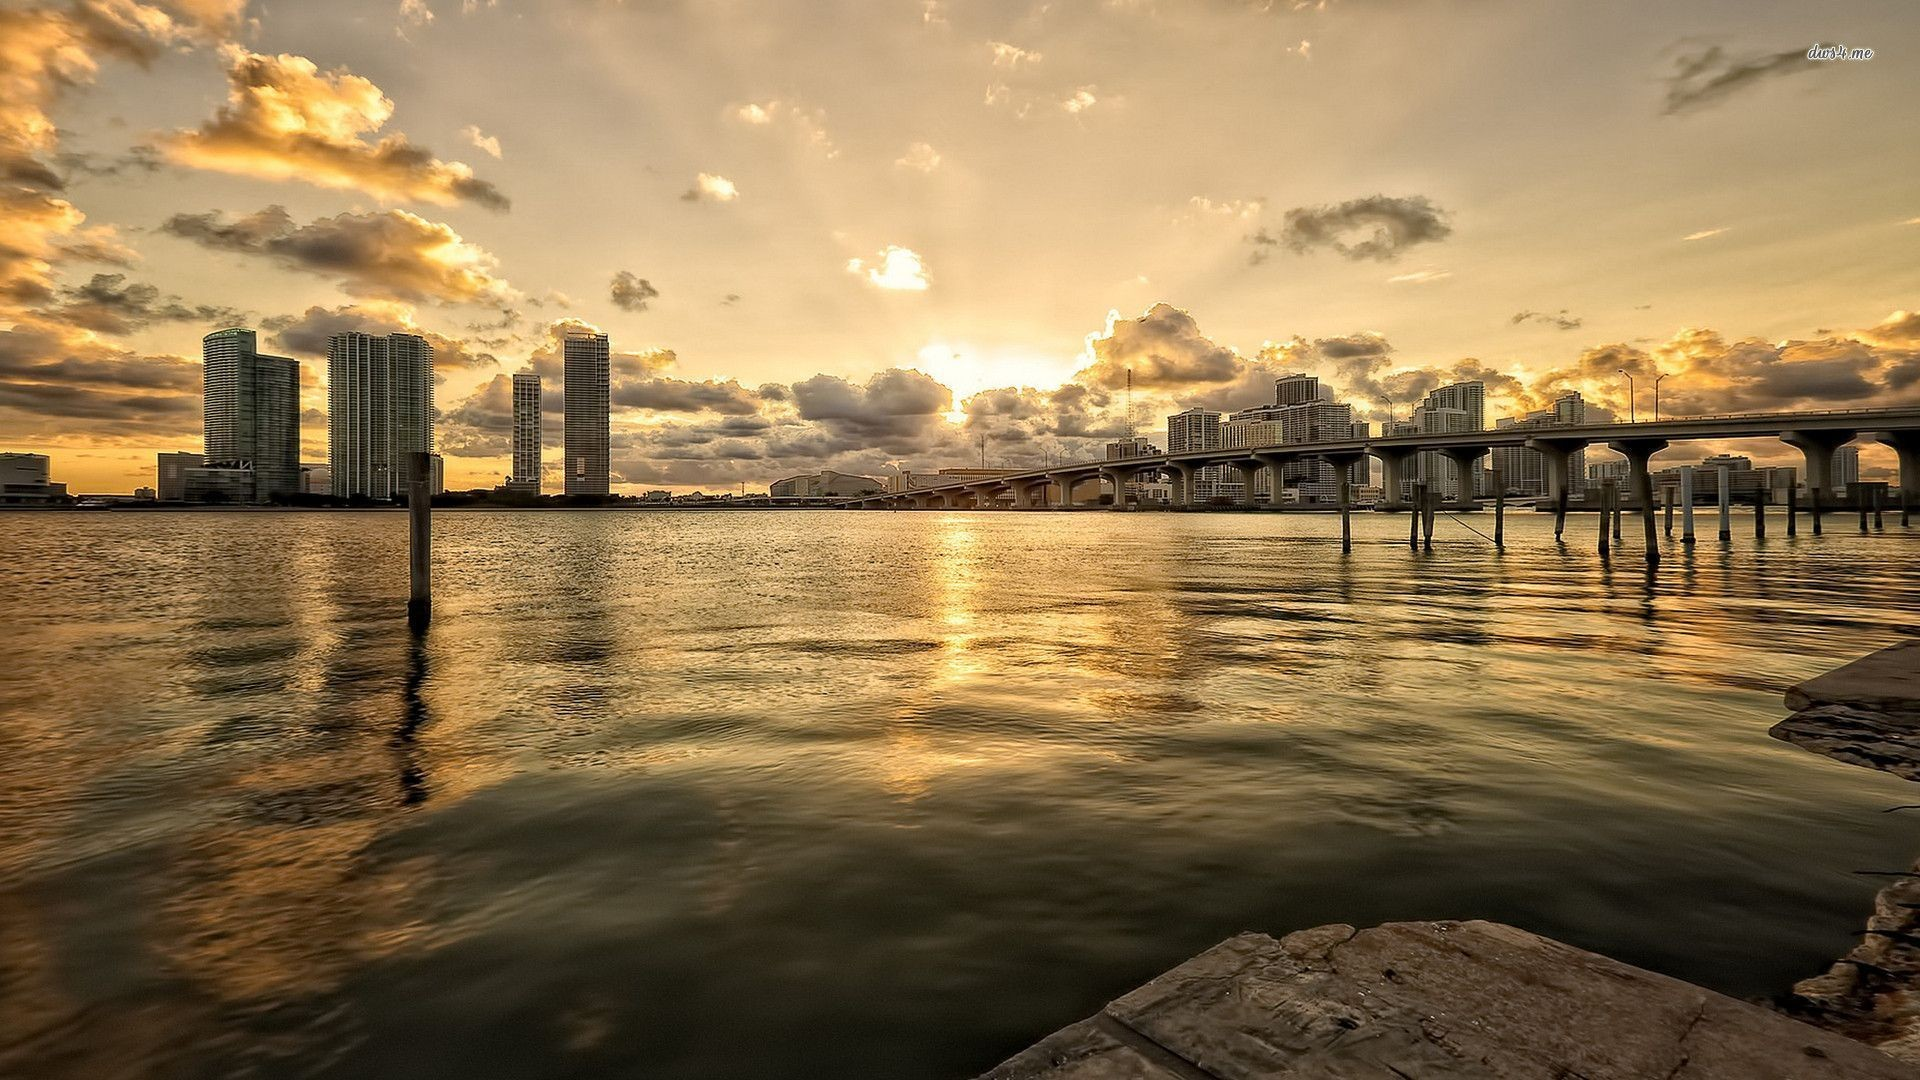 3000x1688 Miami Wallpaper Elegant Florida 2015 Hd 11 Minute Video